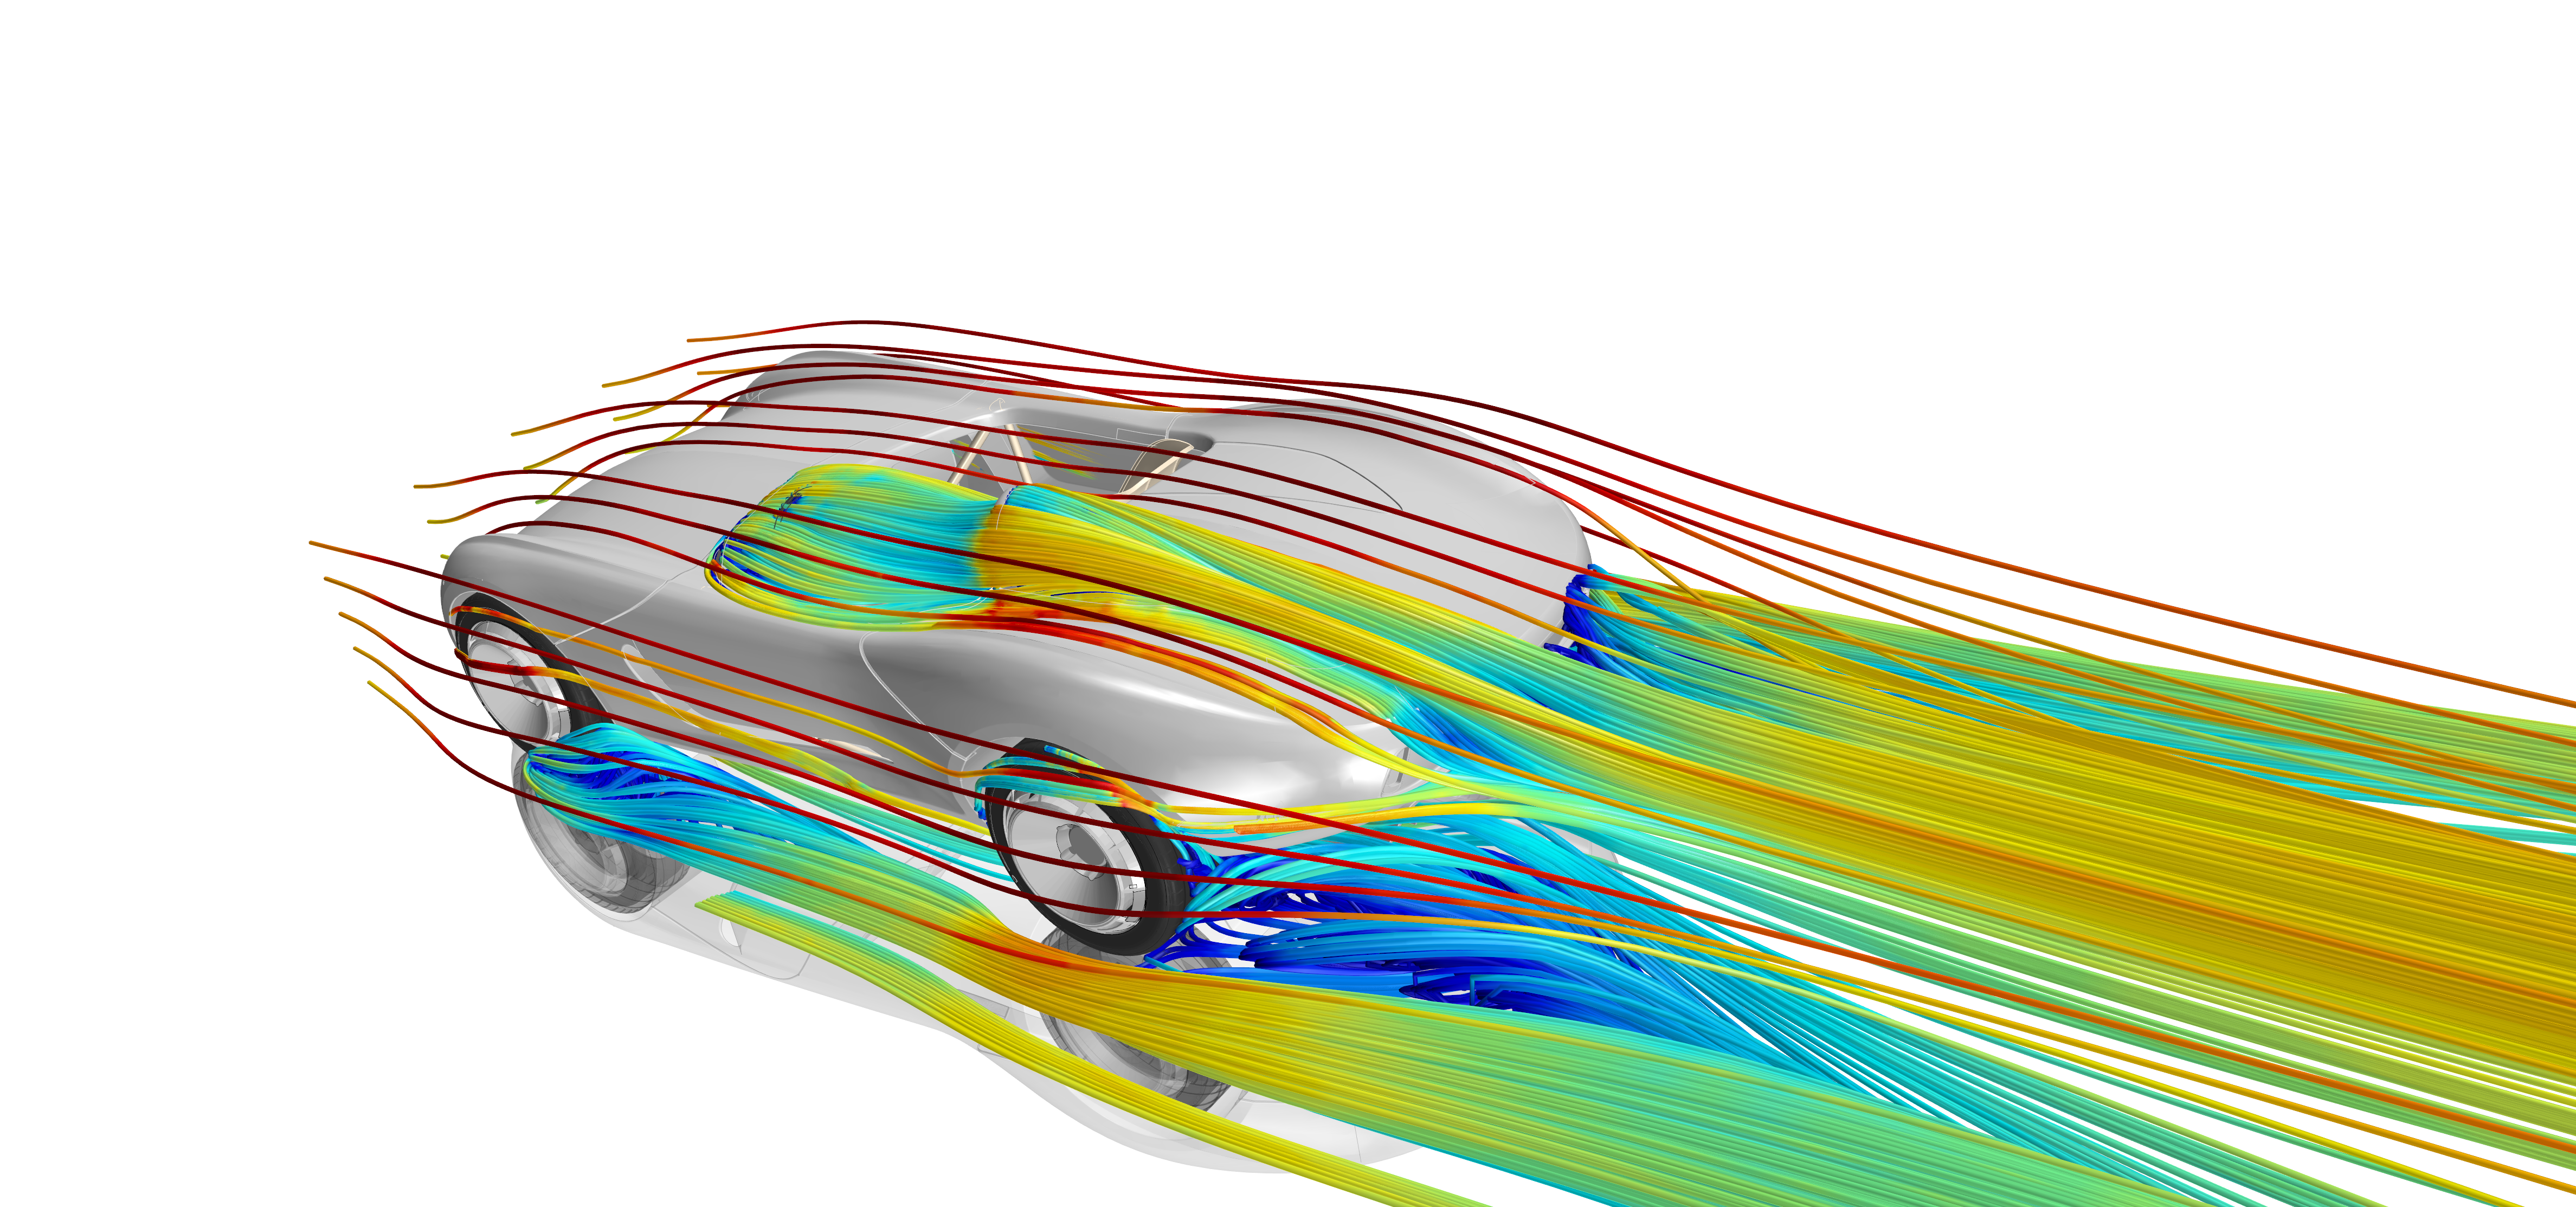 CFD_Streamlines_1.png